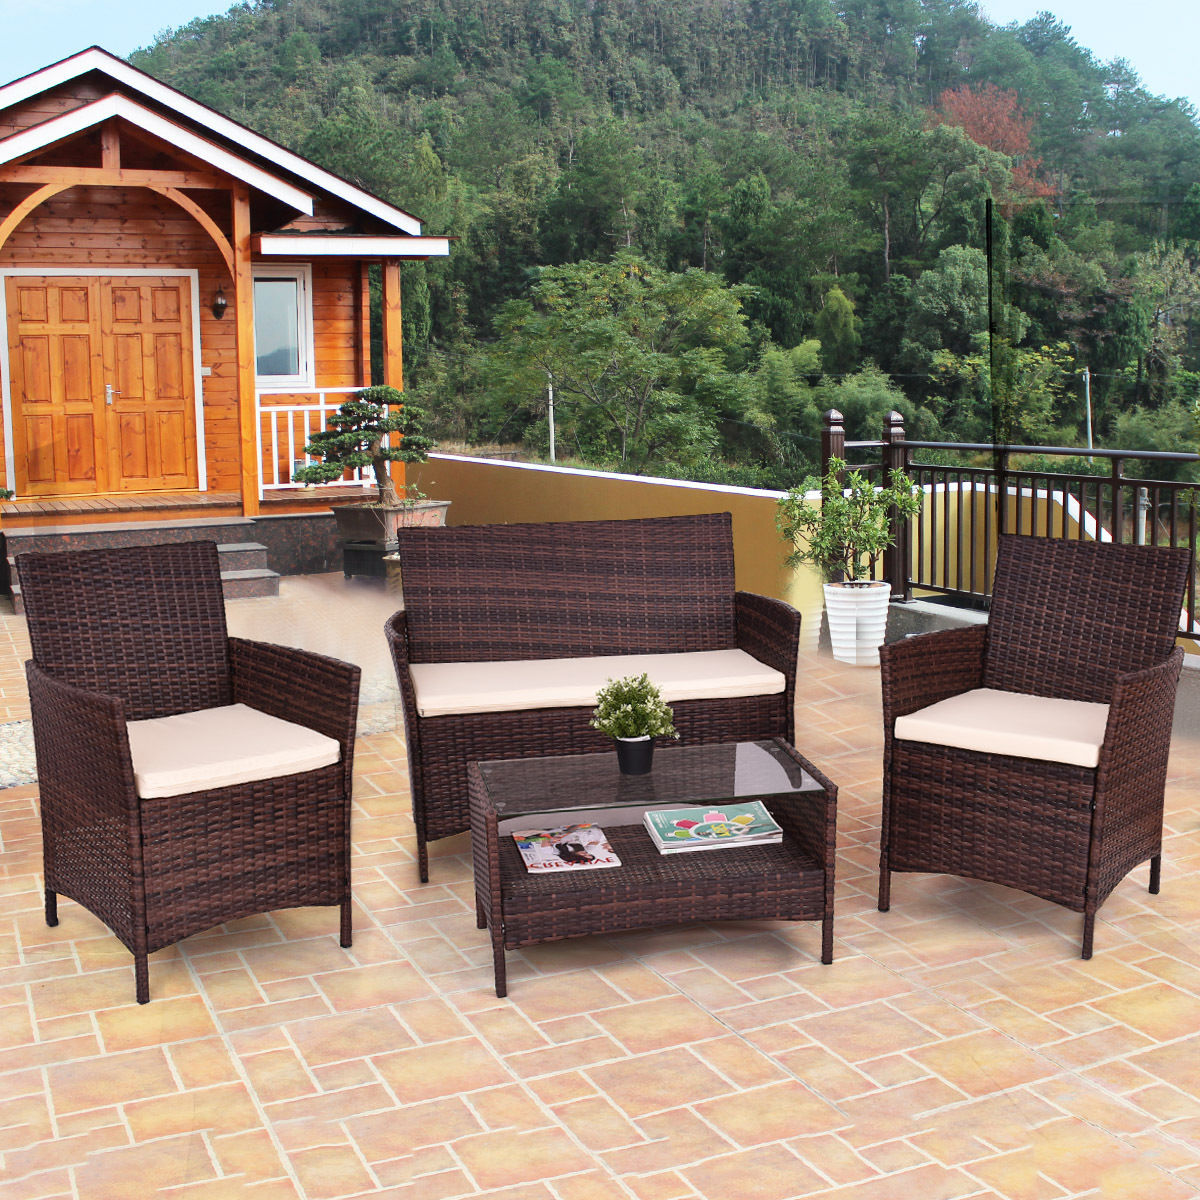 Giantex 4PCS Outdoor Patio PE Rattan Wicker Coffee Table Shelf Modern Garden Sofa Furniture Set With Cushion HW54898Giantex 4PCS Outdoor Patio PE Rattan Wicker Coffee Table Shelf Modern Garden Sofa Furniture Set With Cushion HW54898